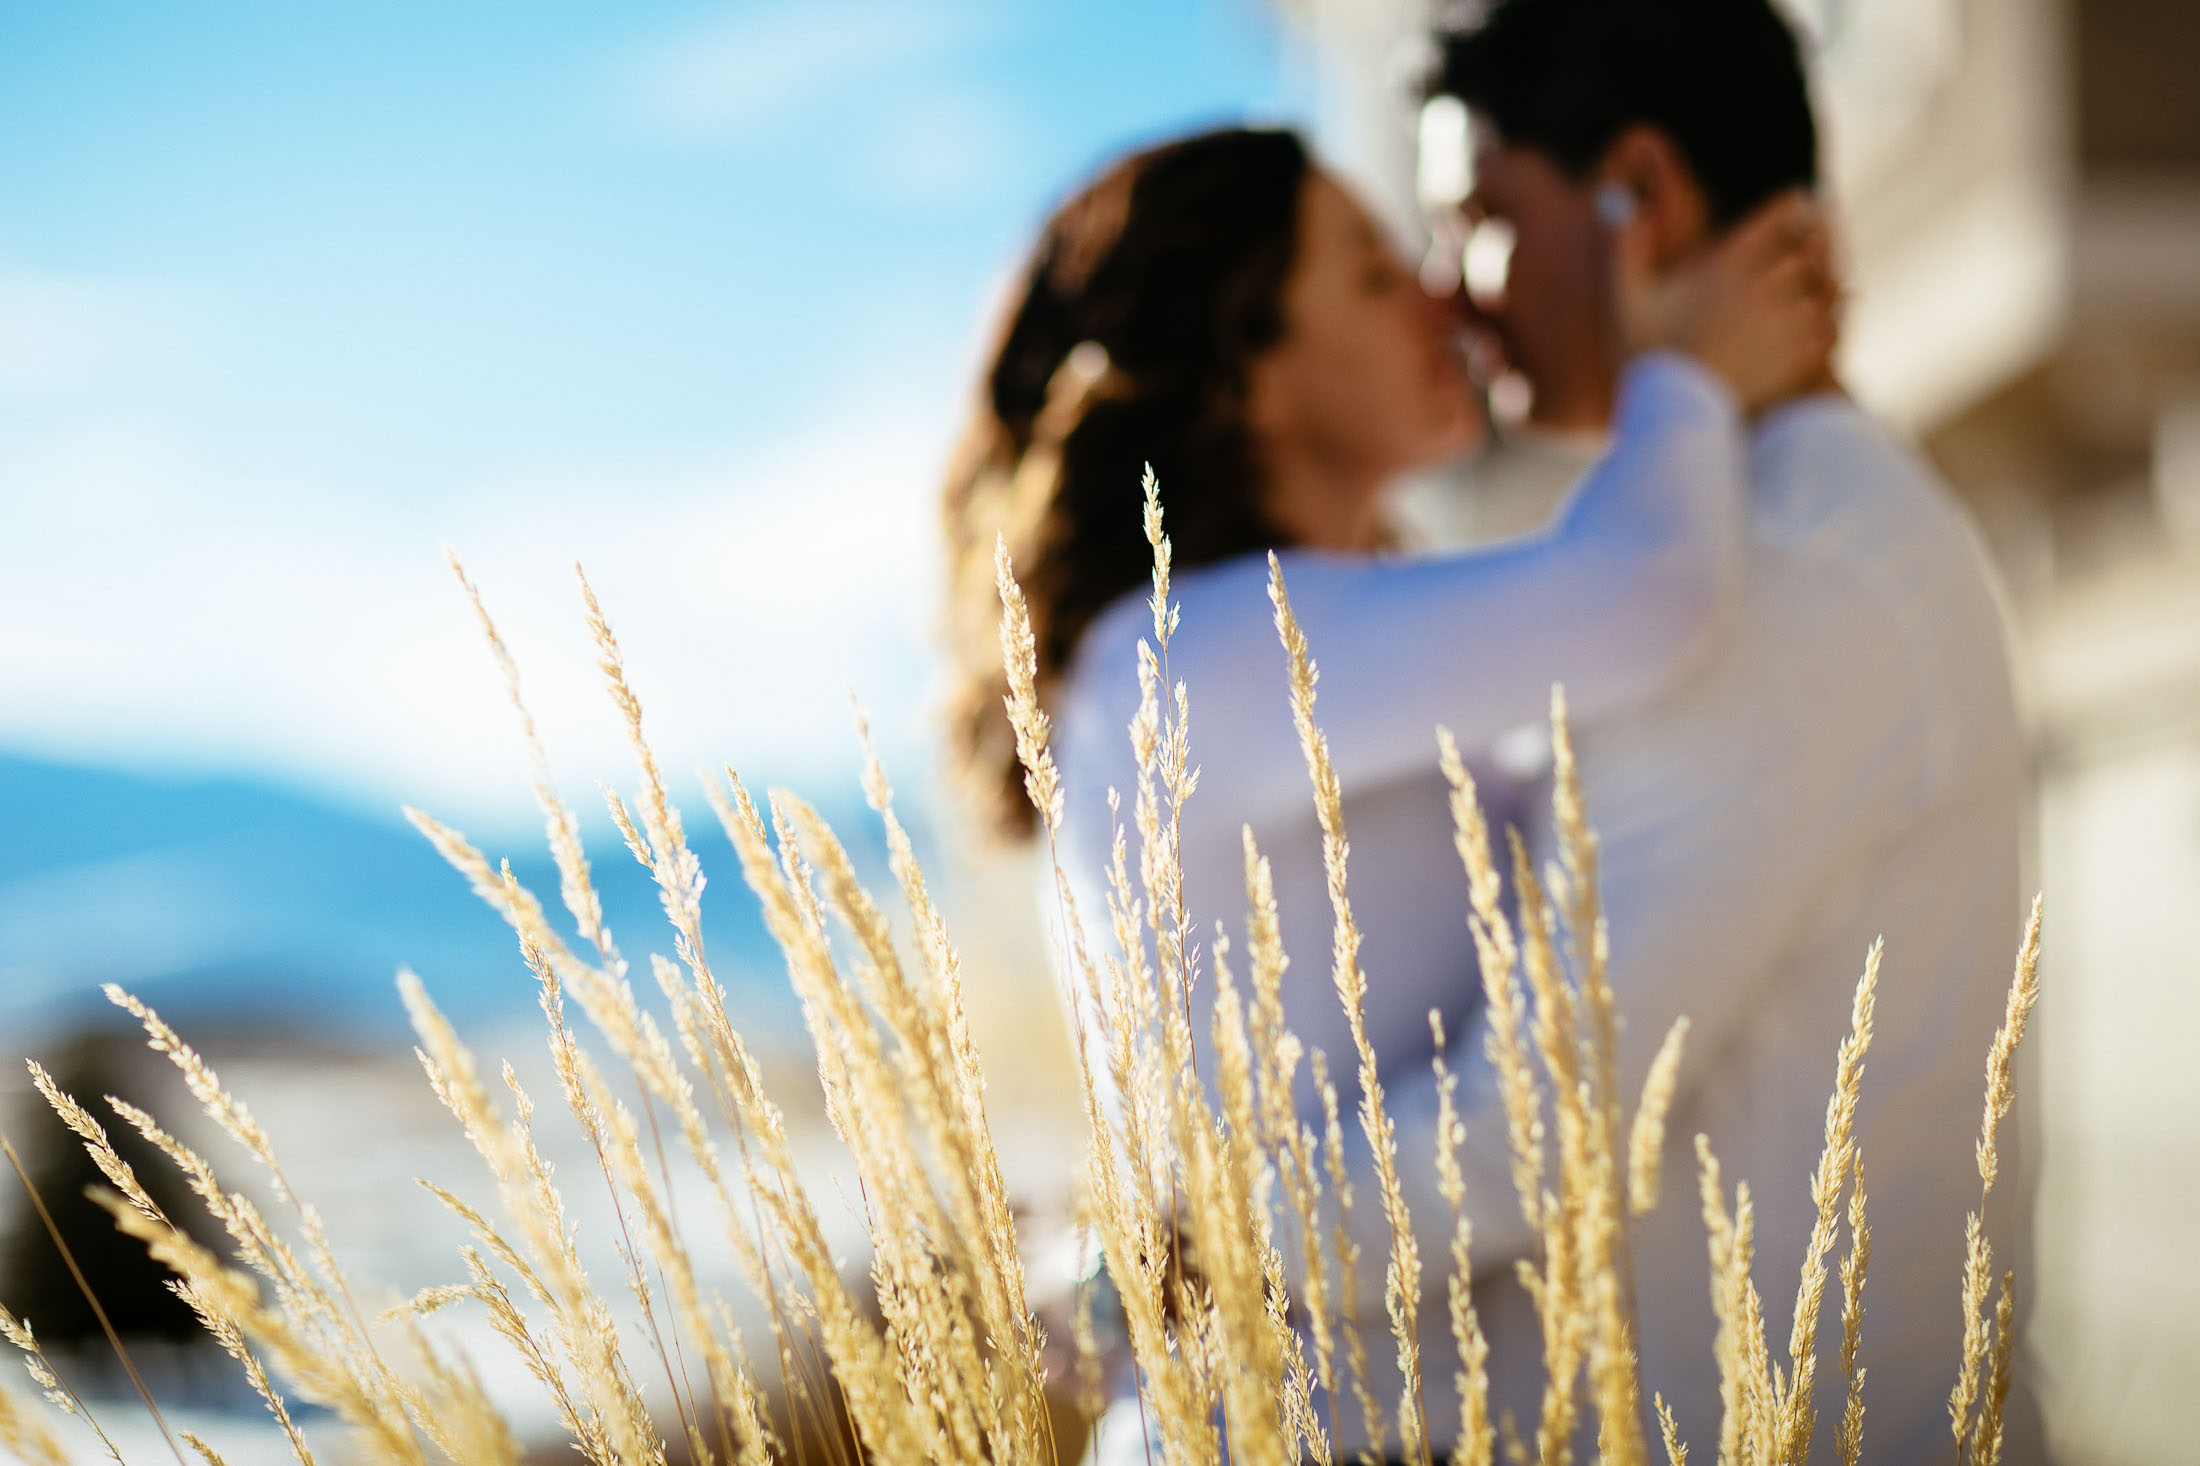 Tall grass in the foreground with couple kissing in front of their home.